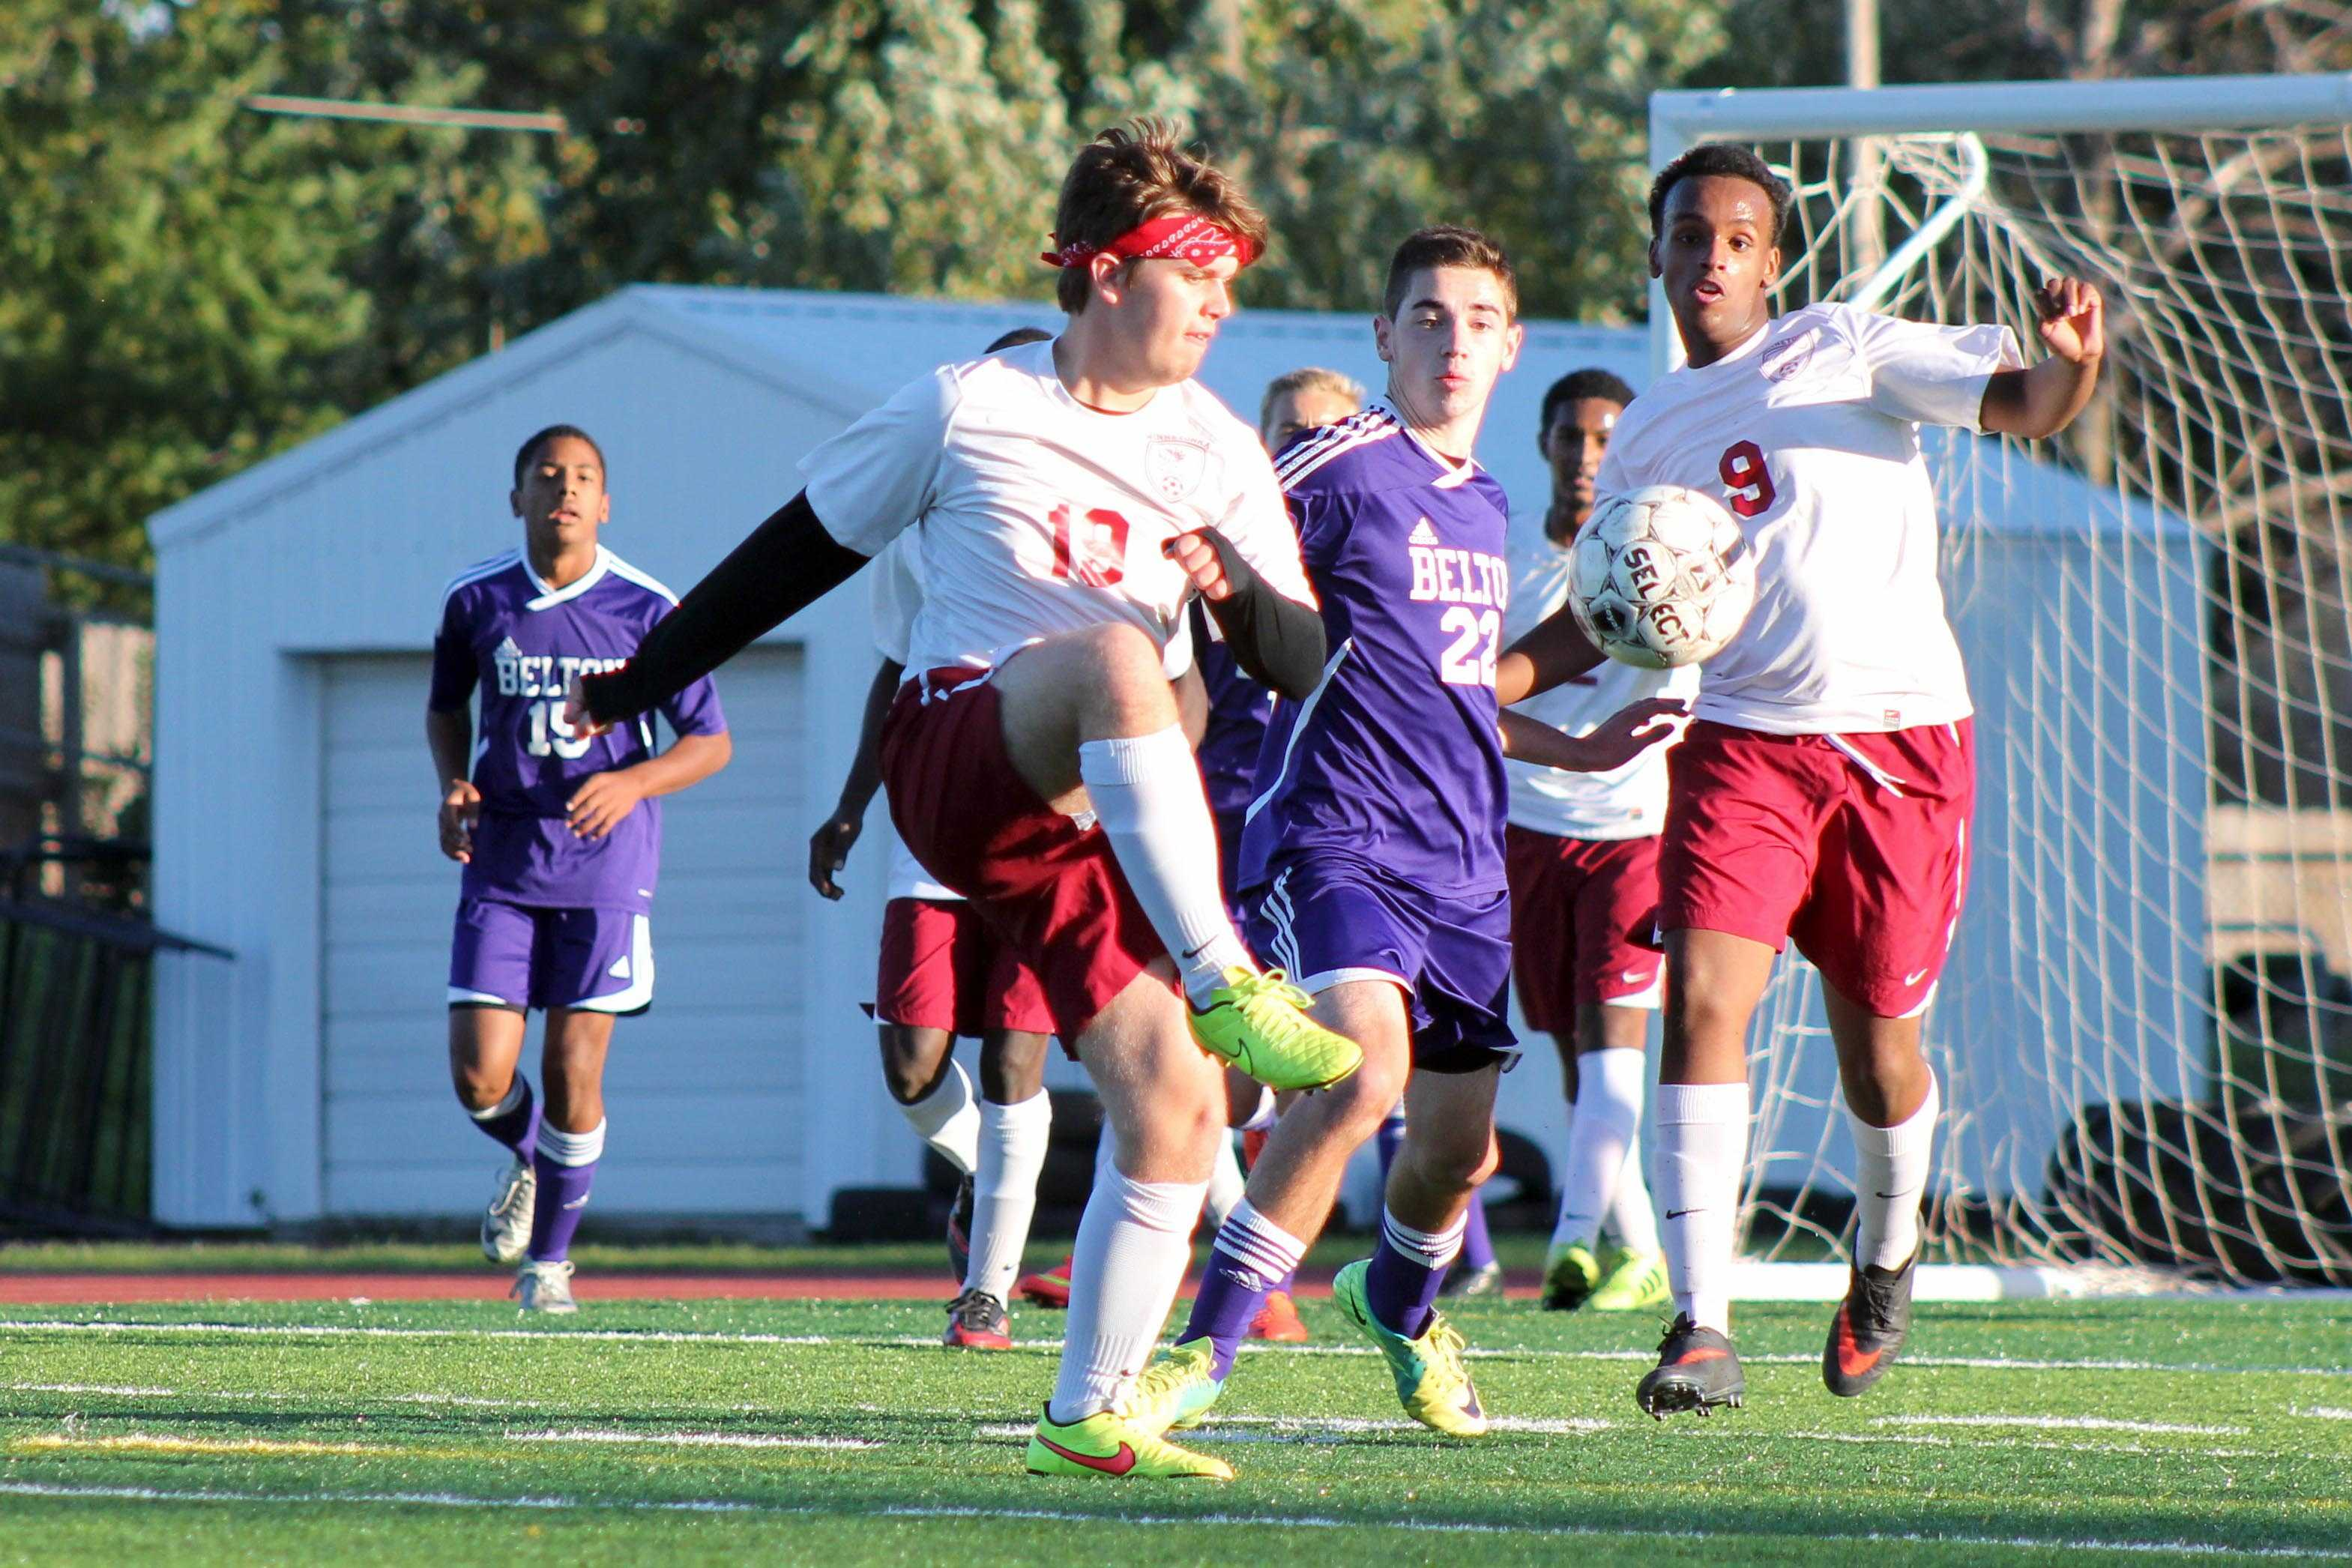 Senior Sadiq Ali focuses hard on the ball during the Belton game October 14. Ali has played soccer for two years now for Winnetonka.